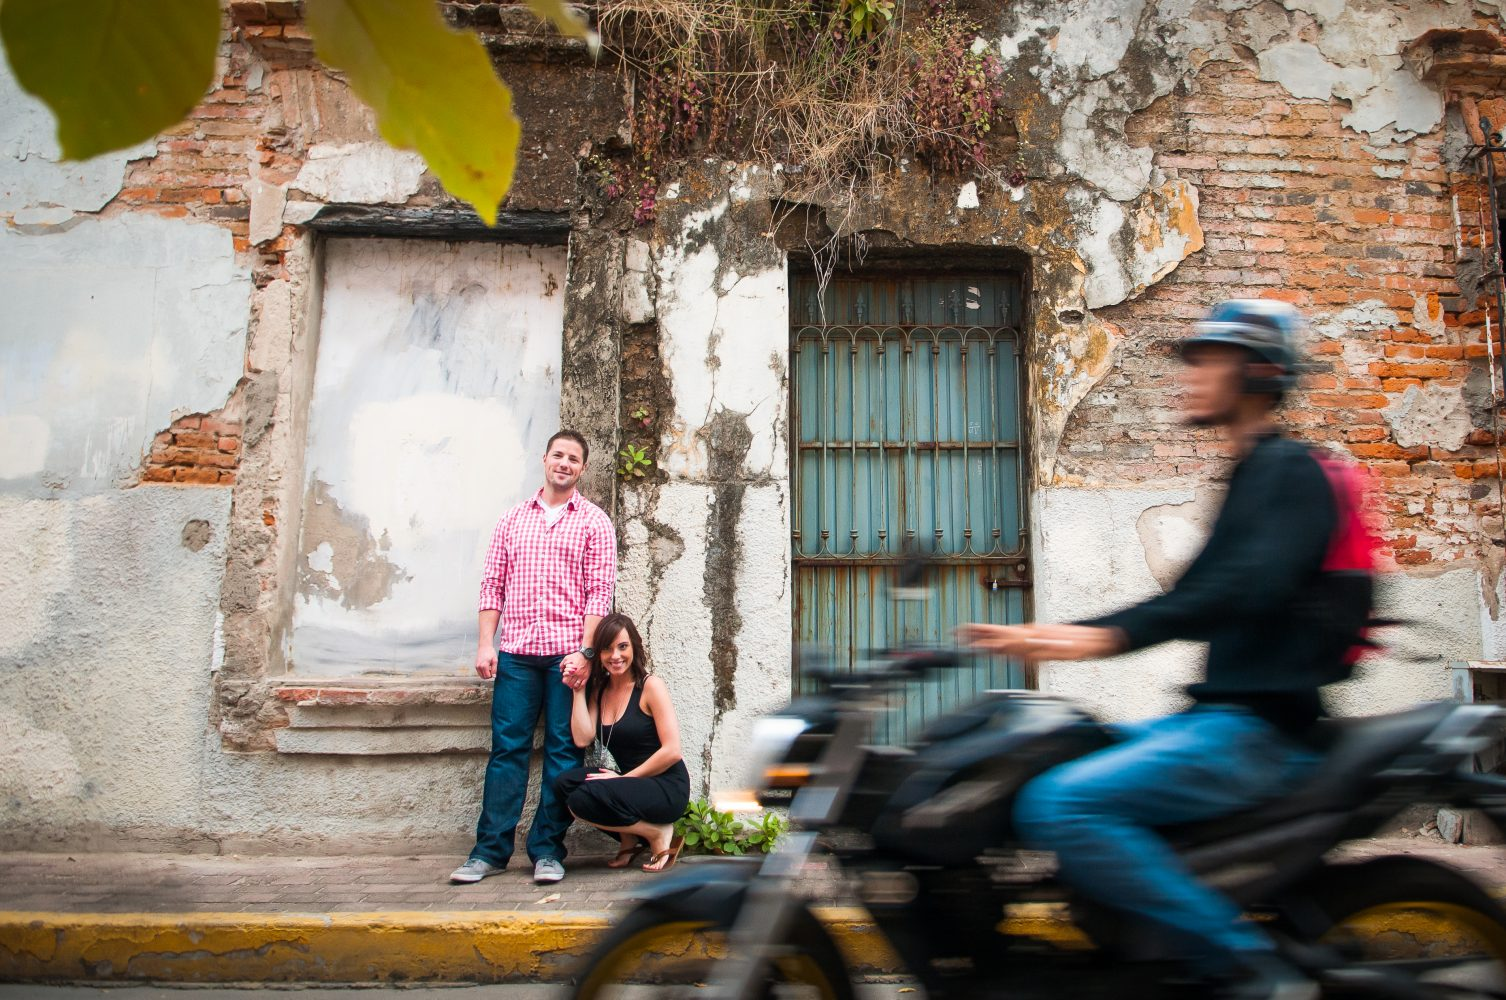 In motion engagement session photographed on the streets of Mexico with a couple in Love | 3Haus Photographics